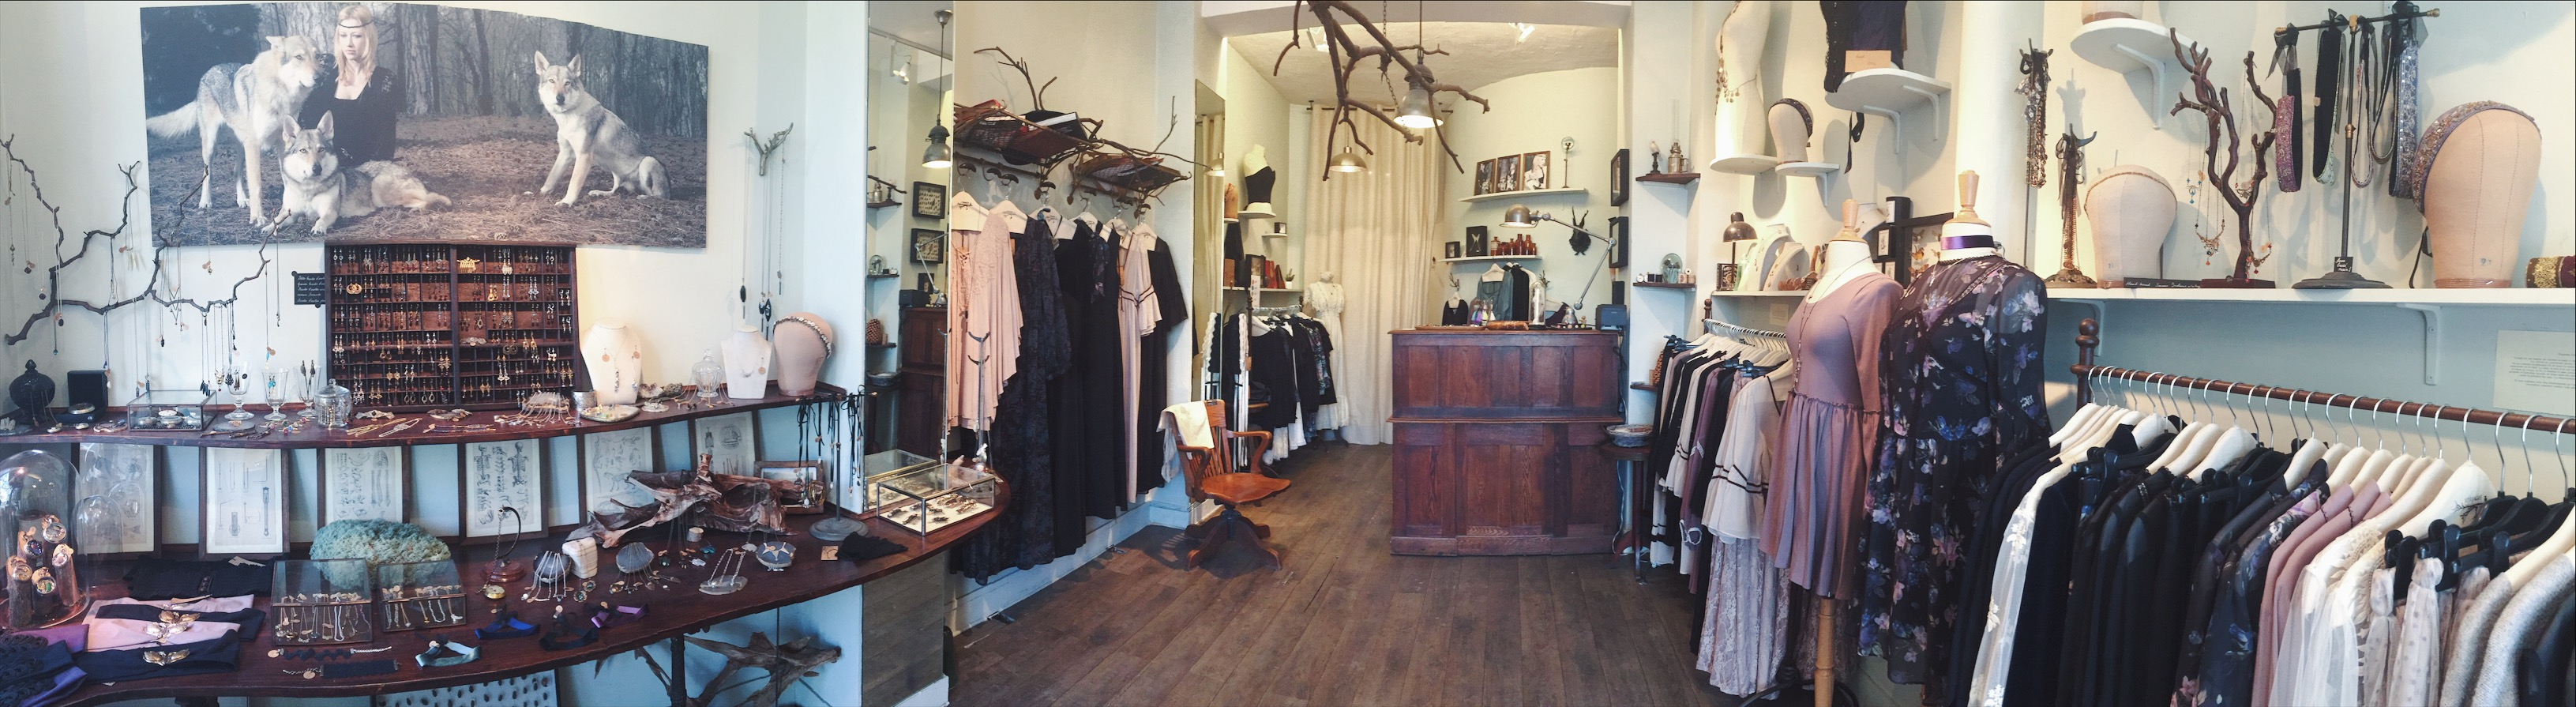 boutique paris steampunk bohemian